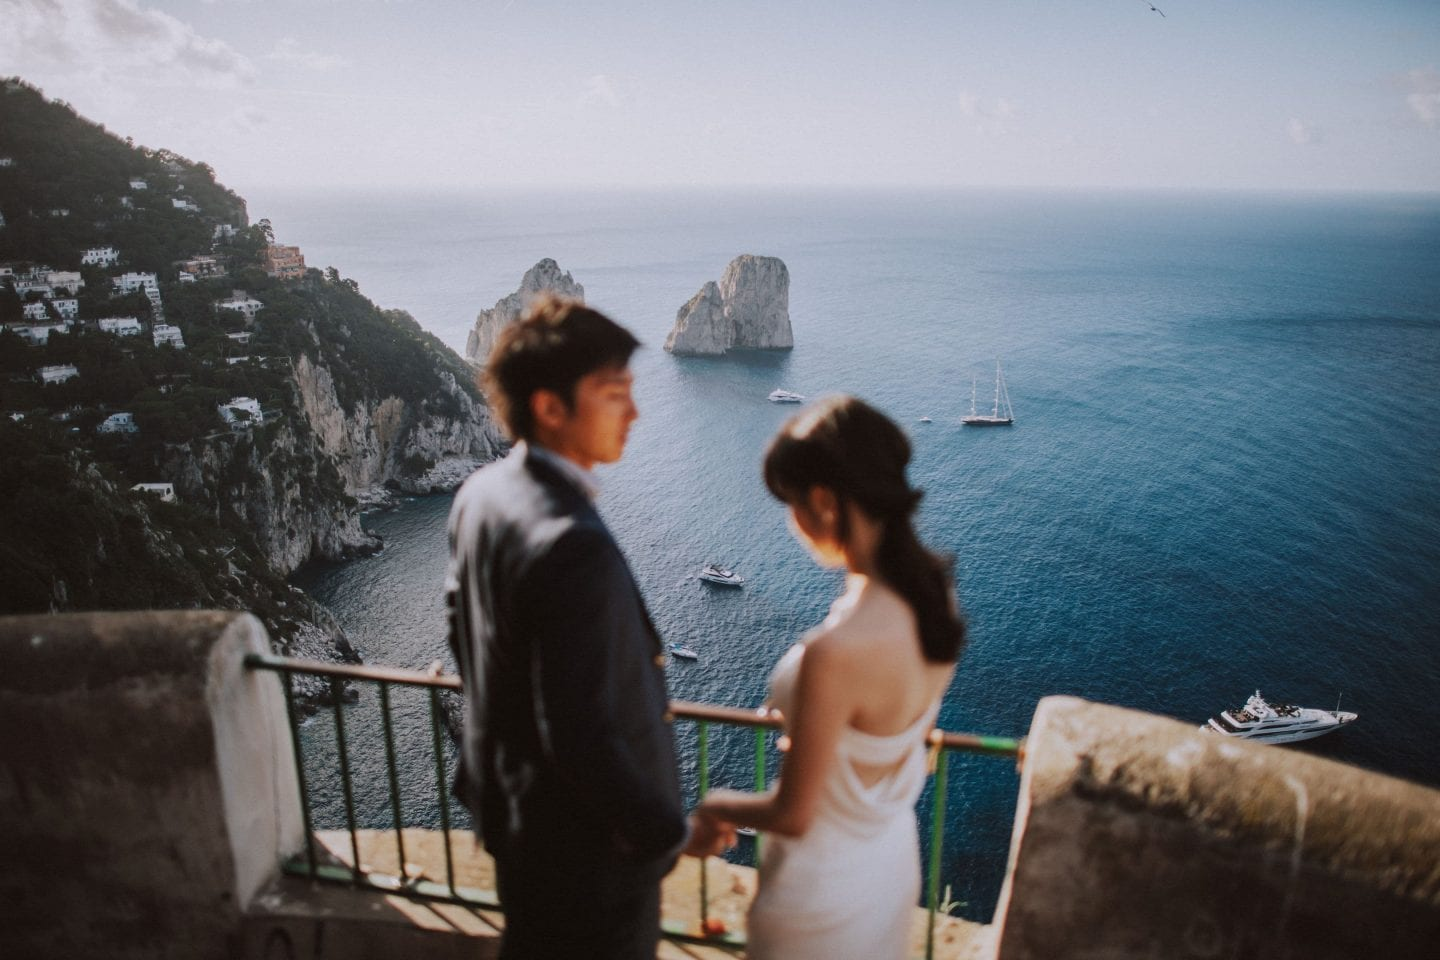 romantic honeymoon shooting capri island photographer capri